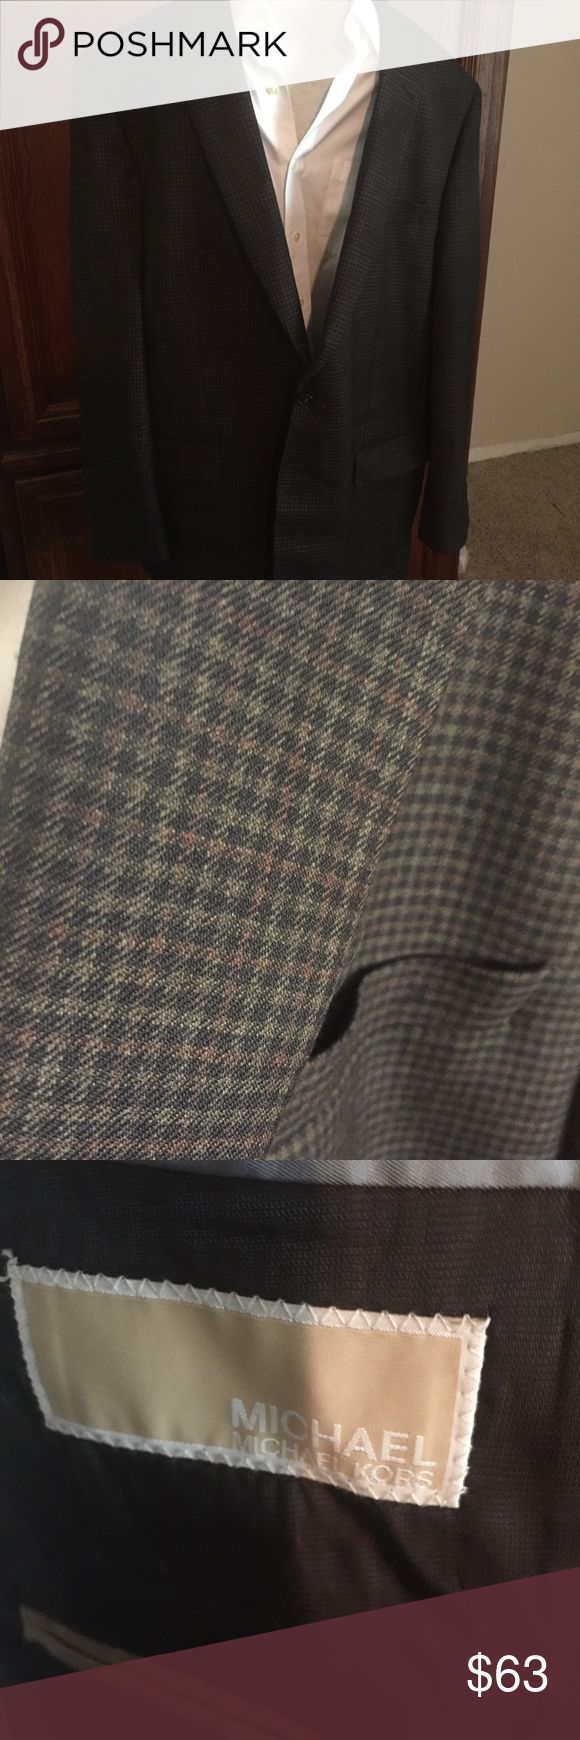 Michael Michael Kors 100% wool blazer big/tall Excellent t condition, just needs a light ironing. Big mans jacket. 50long. Arms 22 inches .inseam of arms 17 inches. Fit XL-XXL MICHAEL Michael Kors Suits & Blazers Sport Coats & Blazers